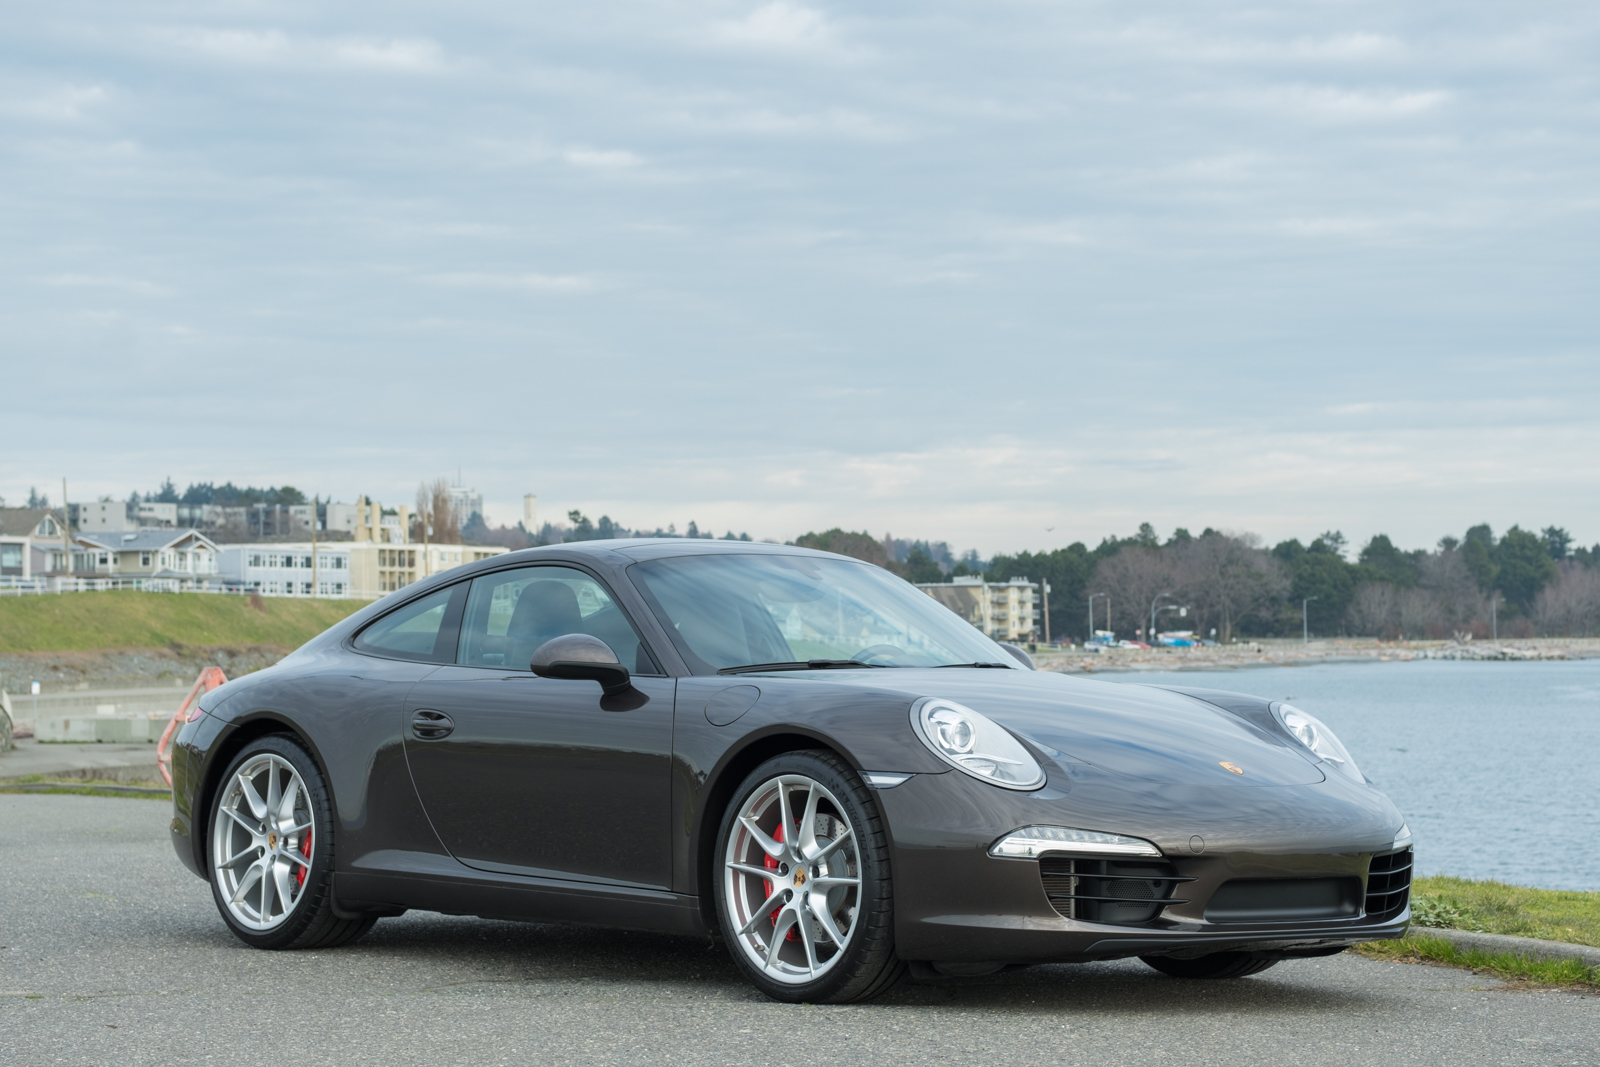 2012 Porsche 911 Carrera S PDK - 4 Year Warranty Included for sale